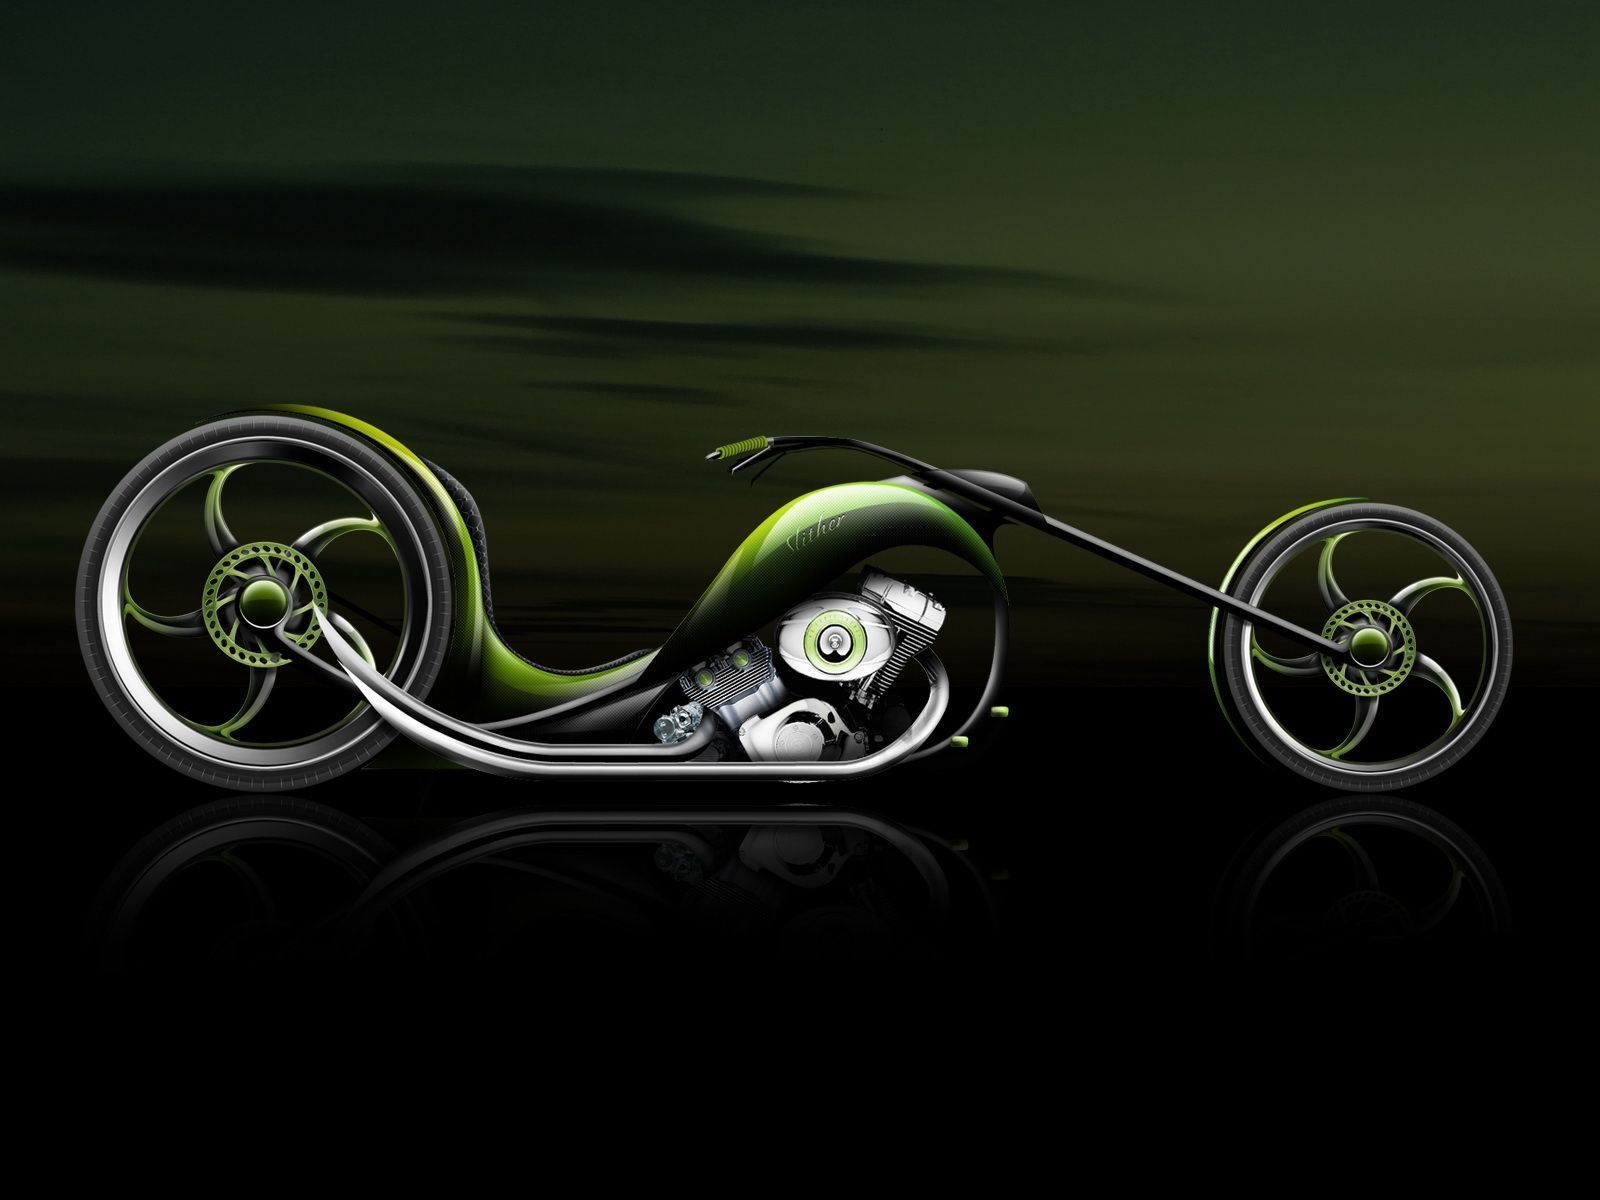 desktop wallpaper 3d bike animation free download for ...